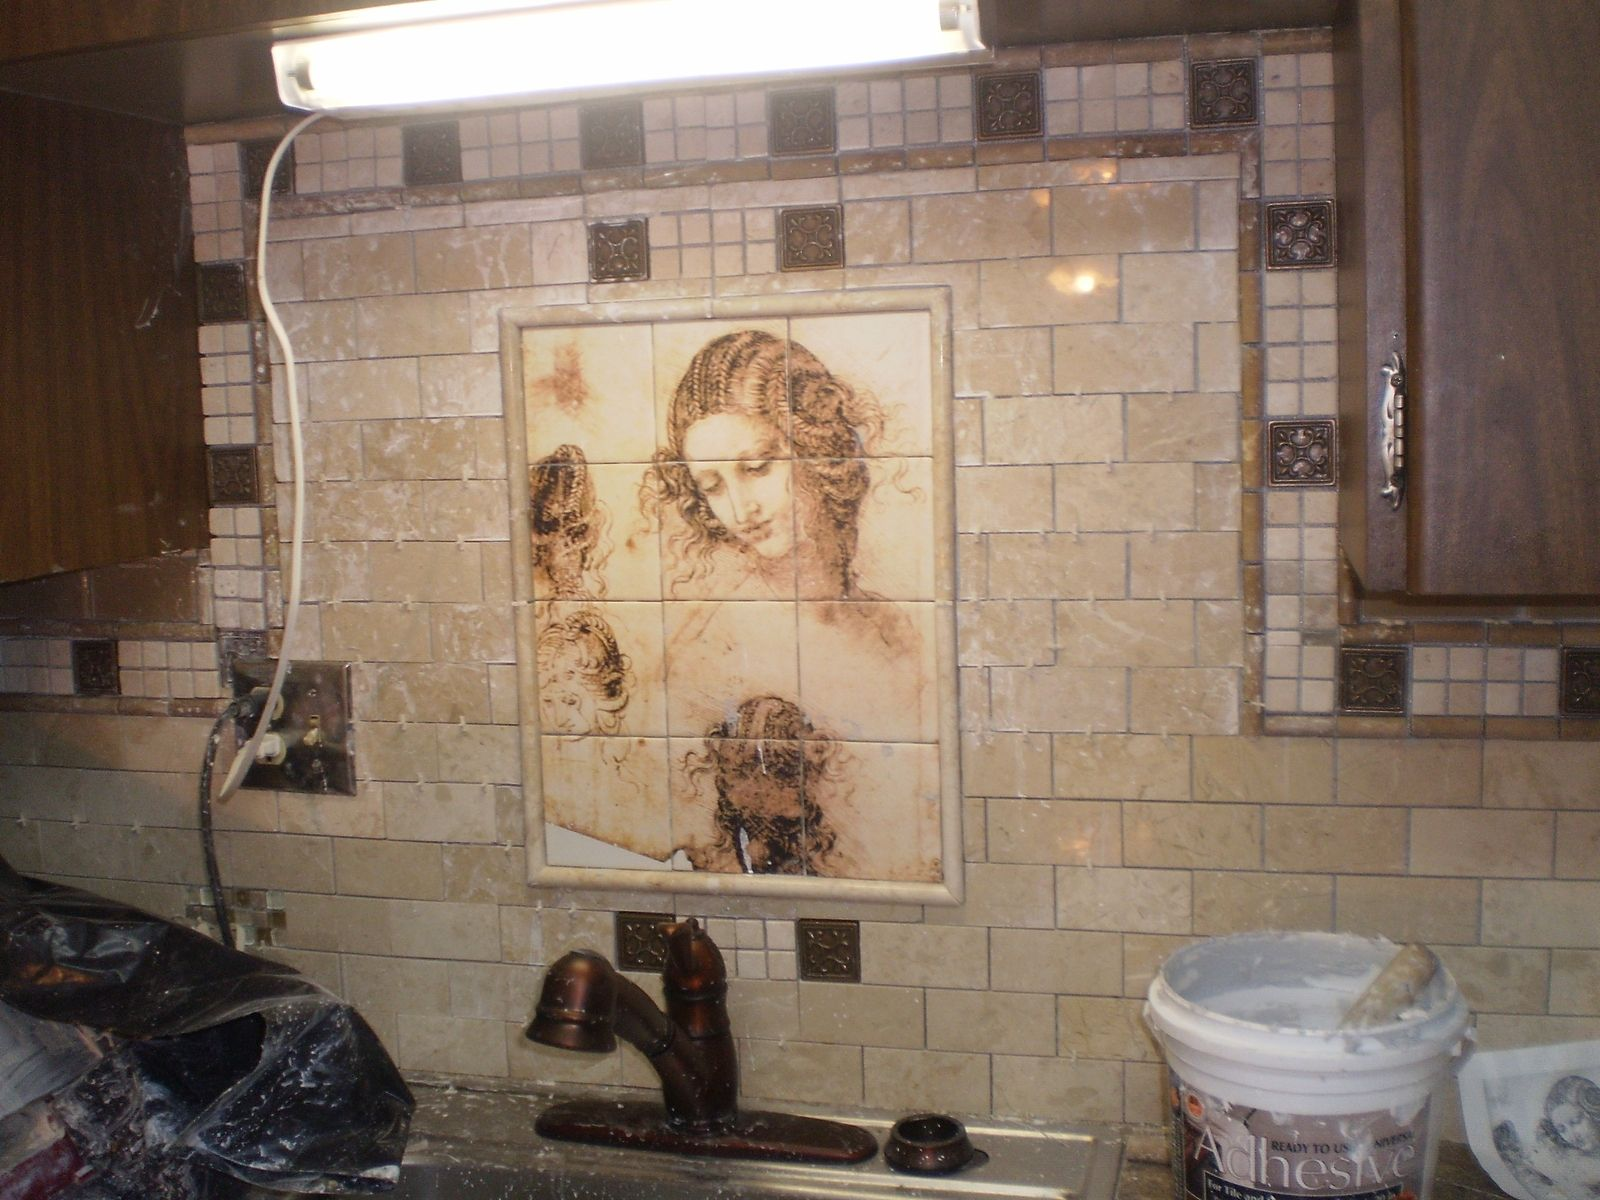 Handmade ceramic or marble kitchen tile mural by flekman for Custom mural tiles